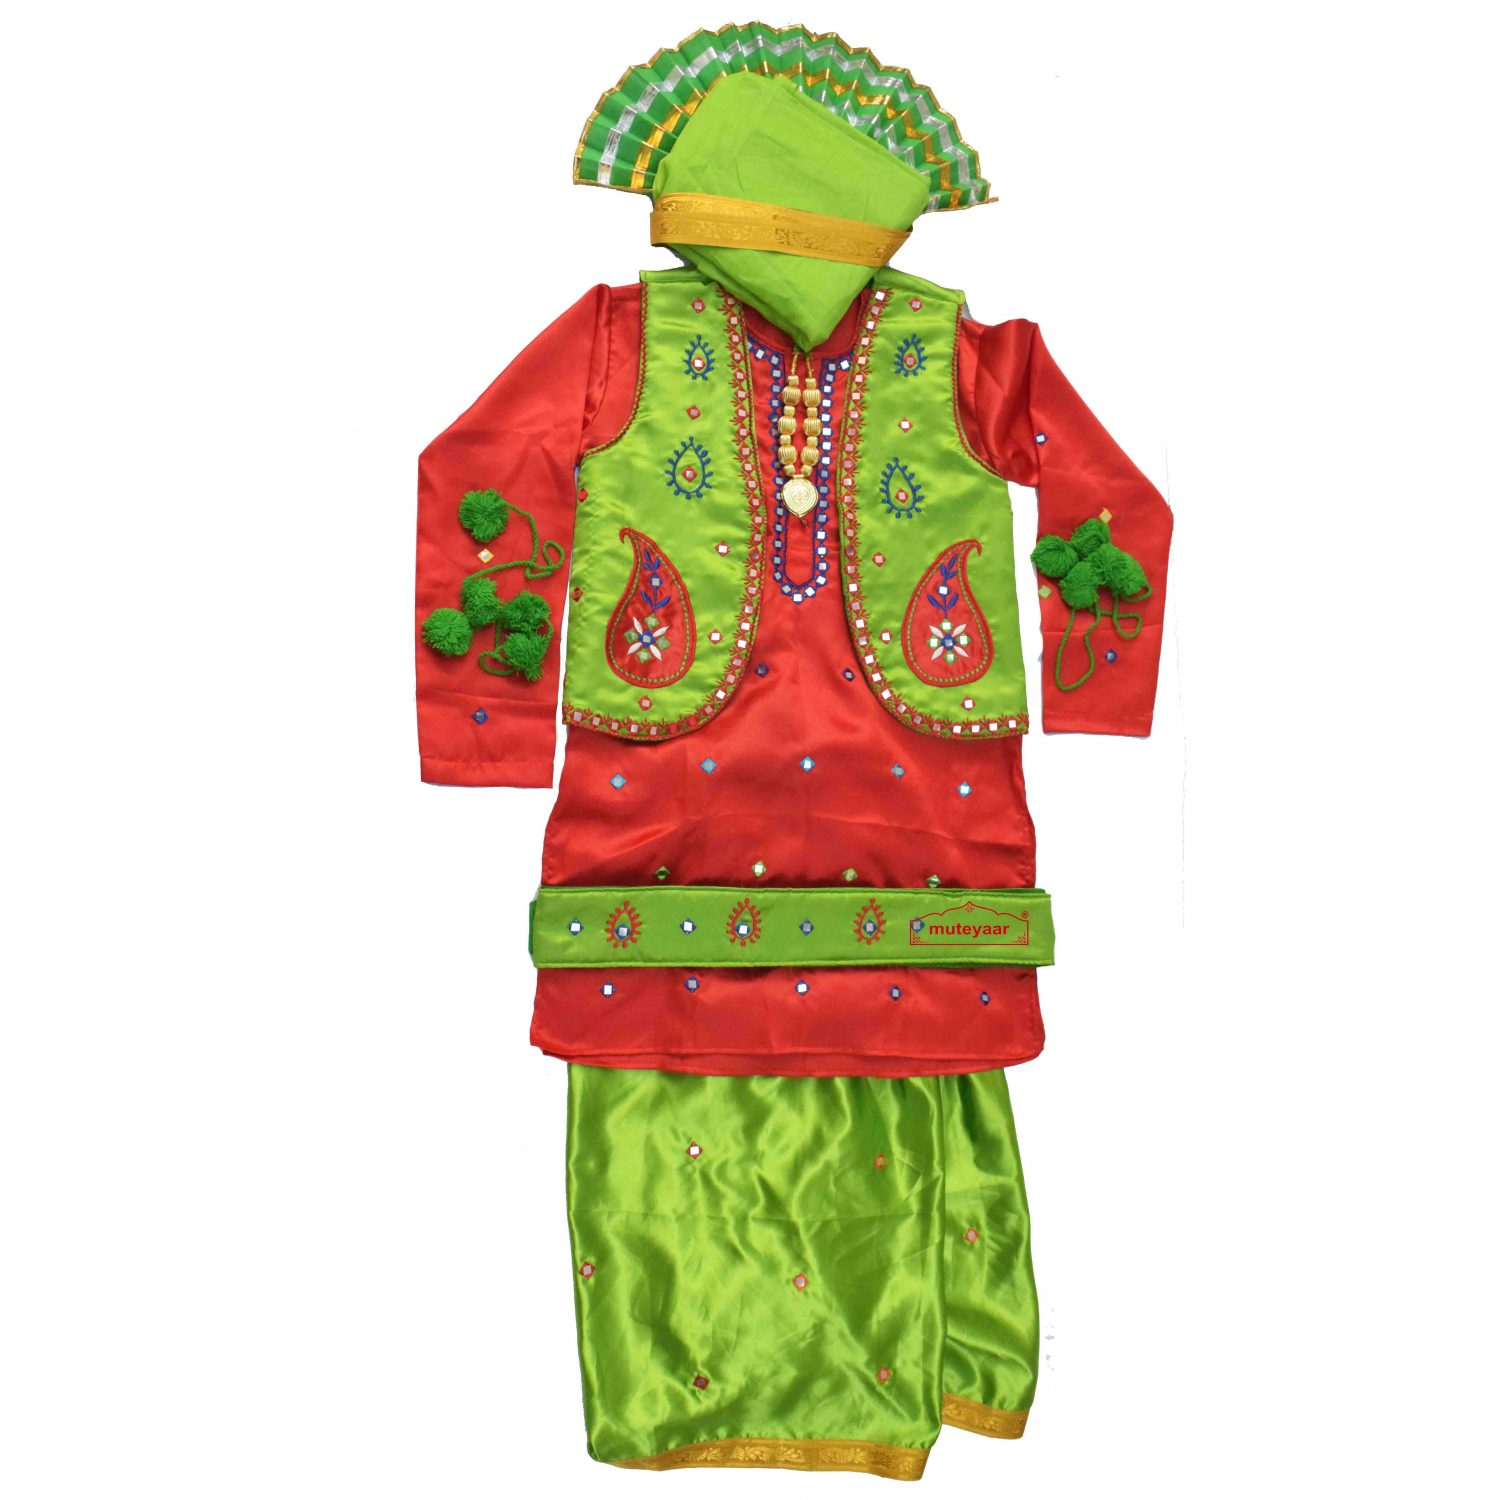 Bhangra Costume with customized embroidery 1